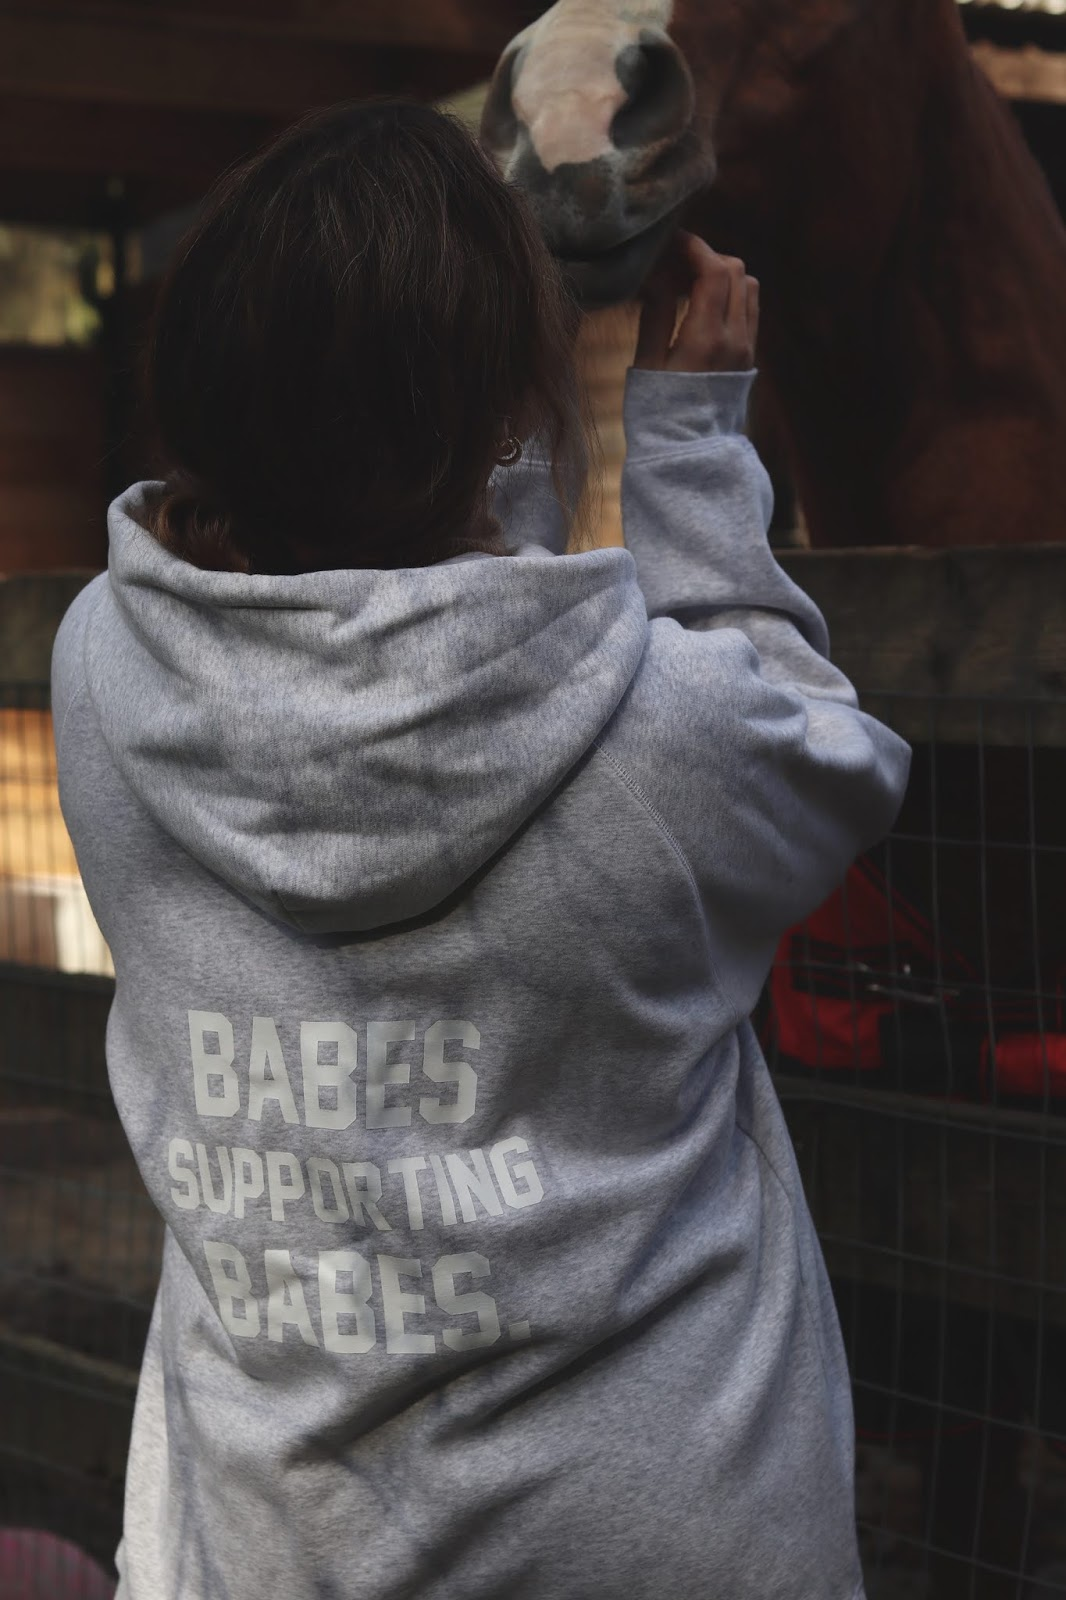 Brunette Babes Supporting Babes big sister hoodie aleesha harris international womens day